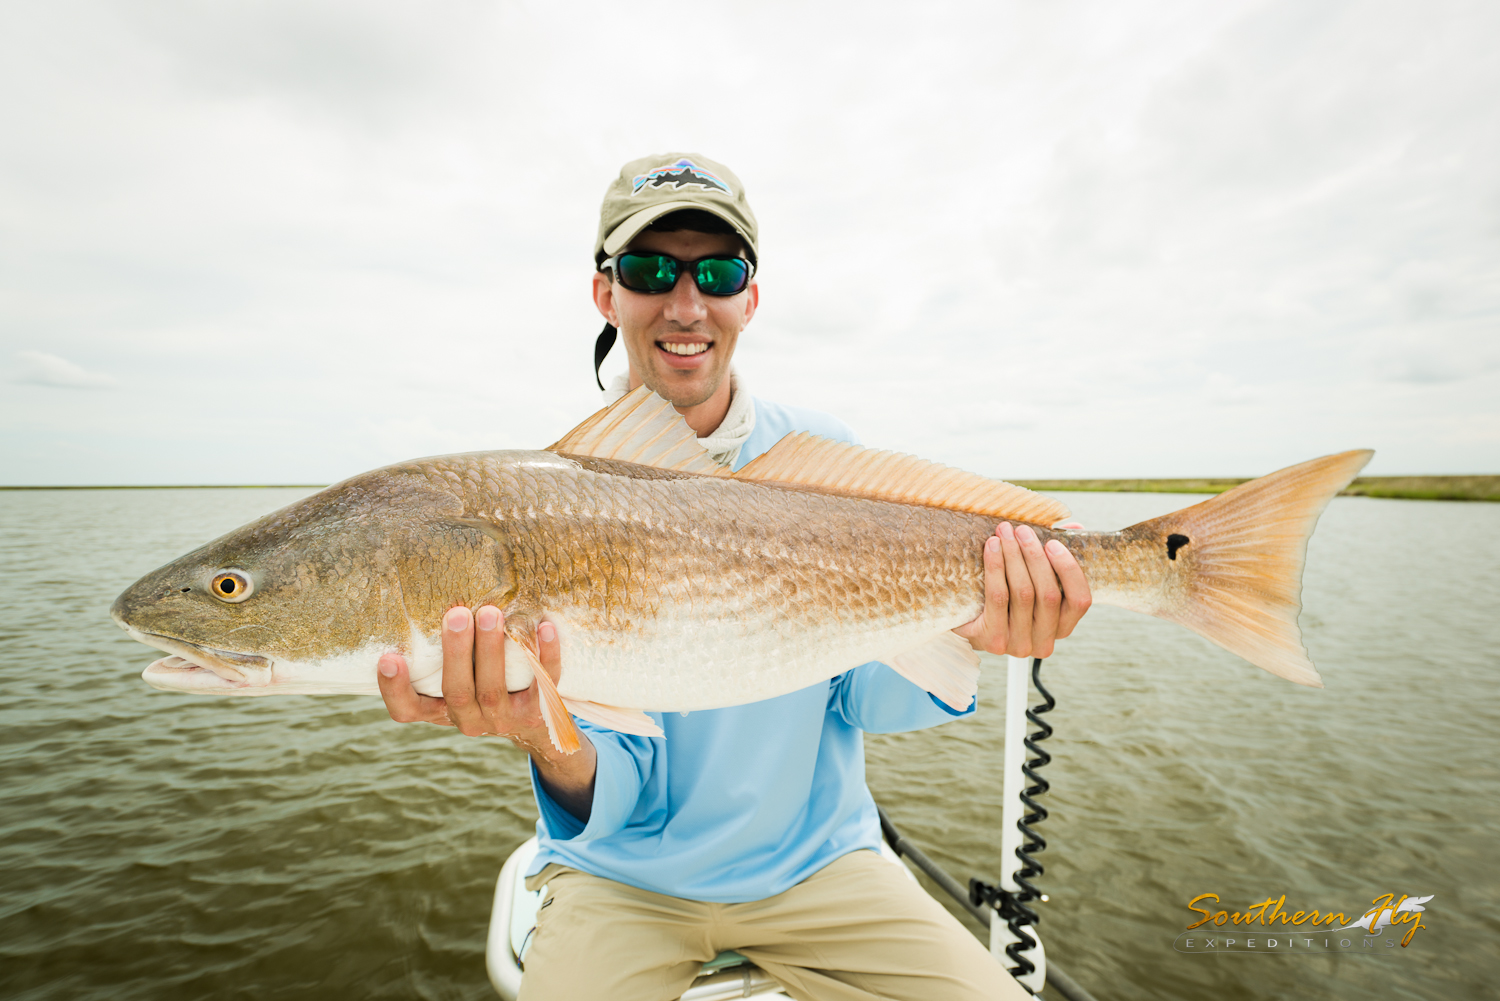 Shallow water fly fishing Southern Fly Expeditions New Orleans